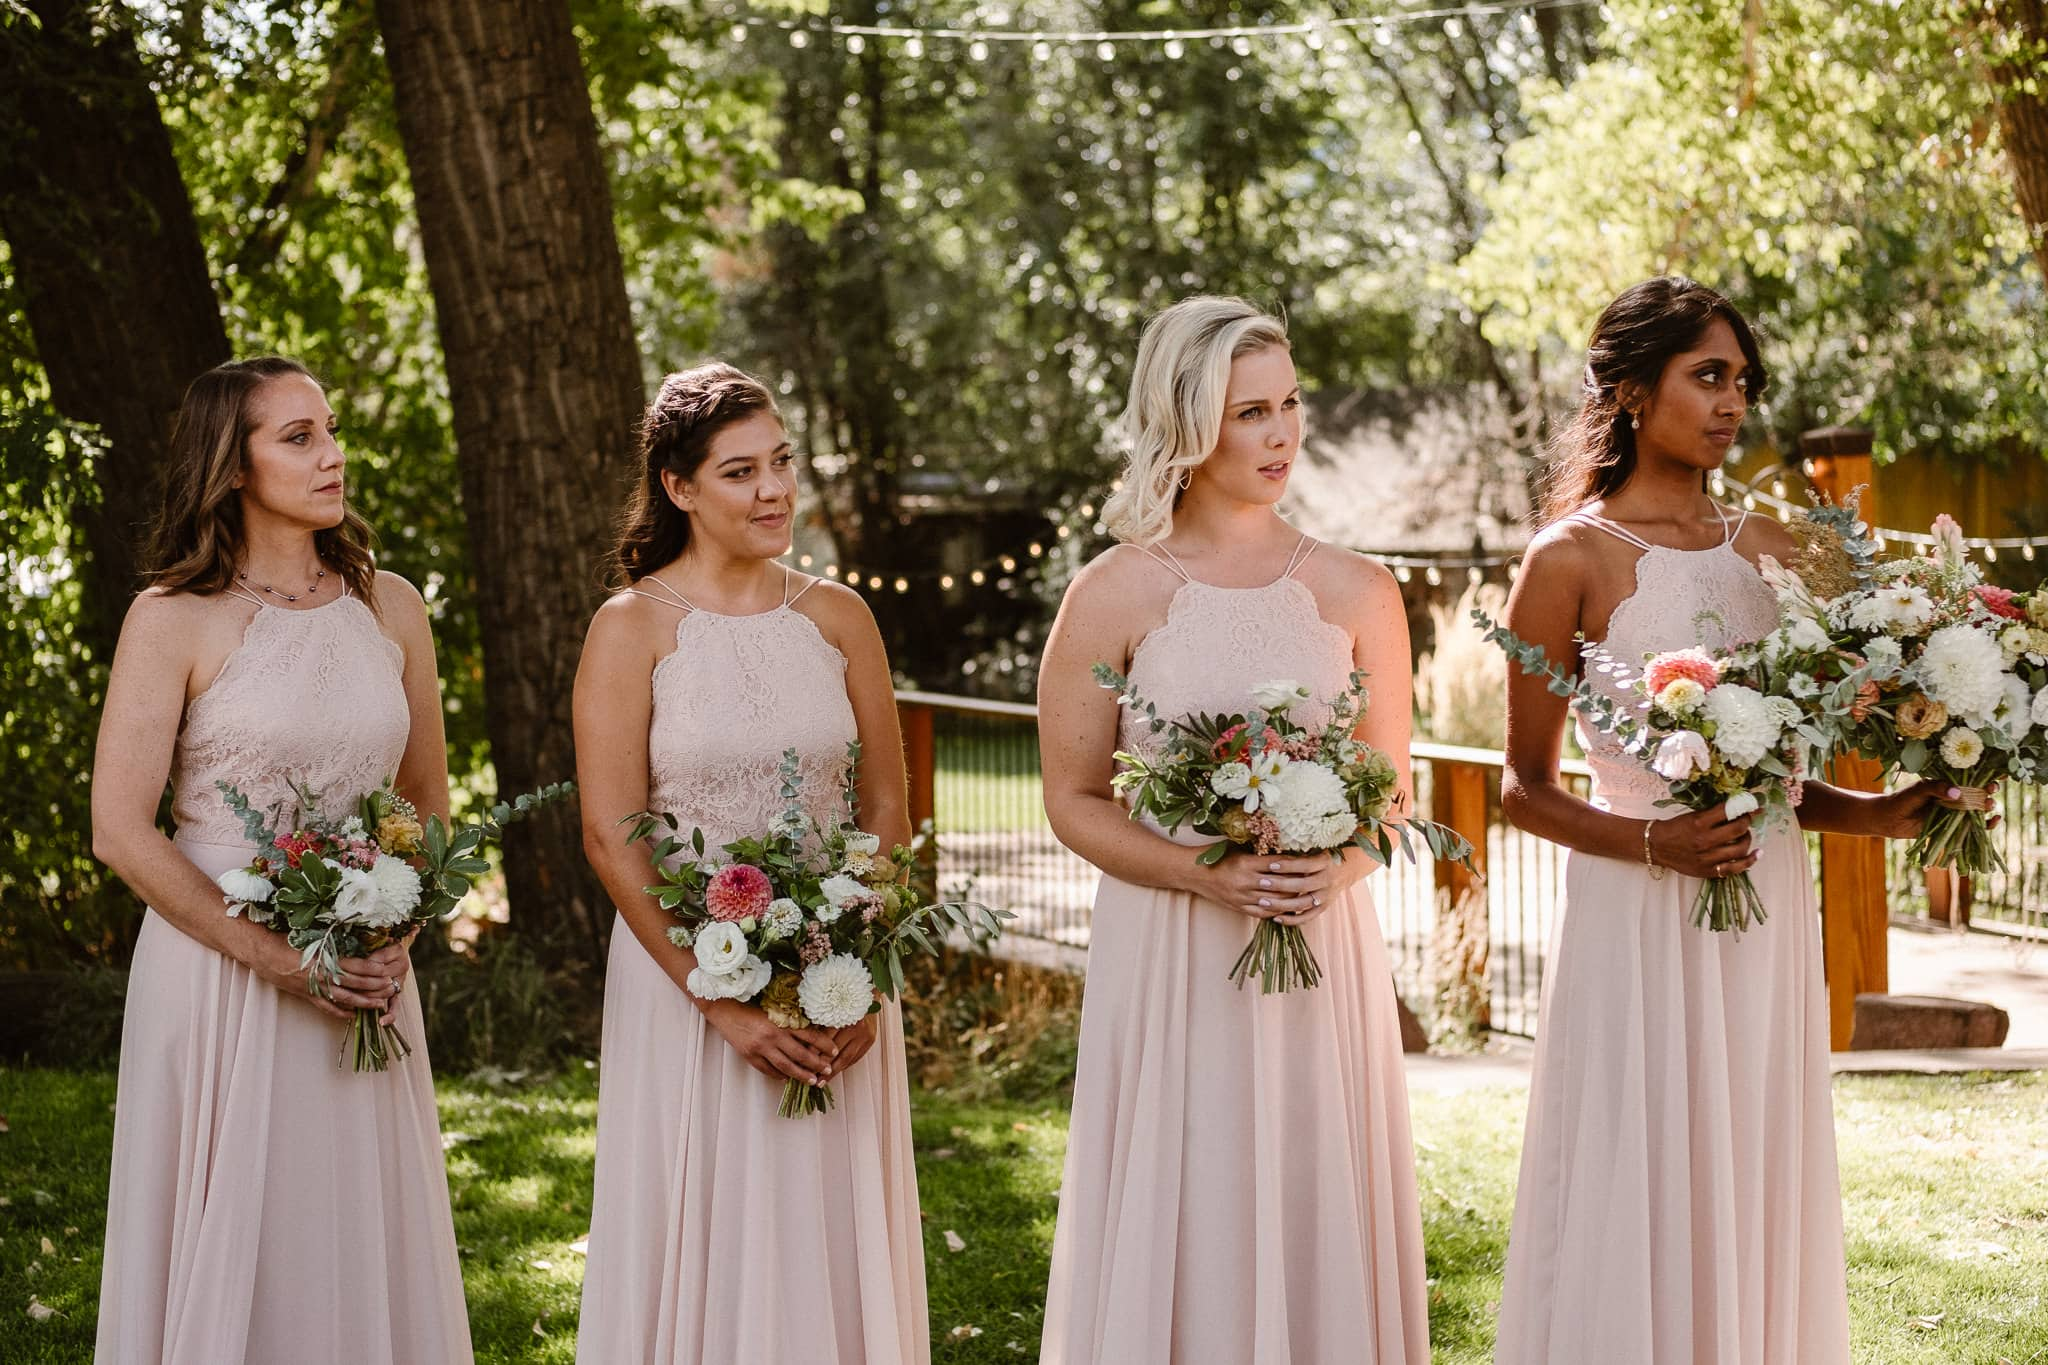 Lyons Farmette wedding photographer, Colorado intimate wedding photographer, wedding ceremony, bridesmaids in dusty pink dresses